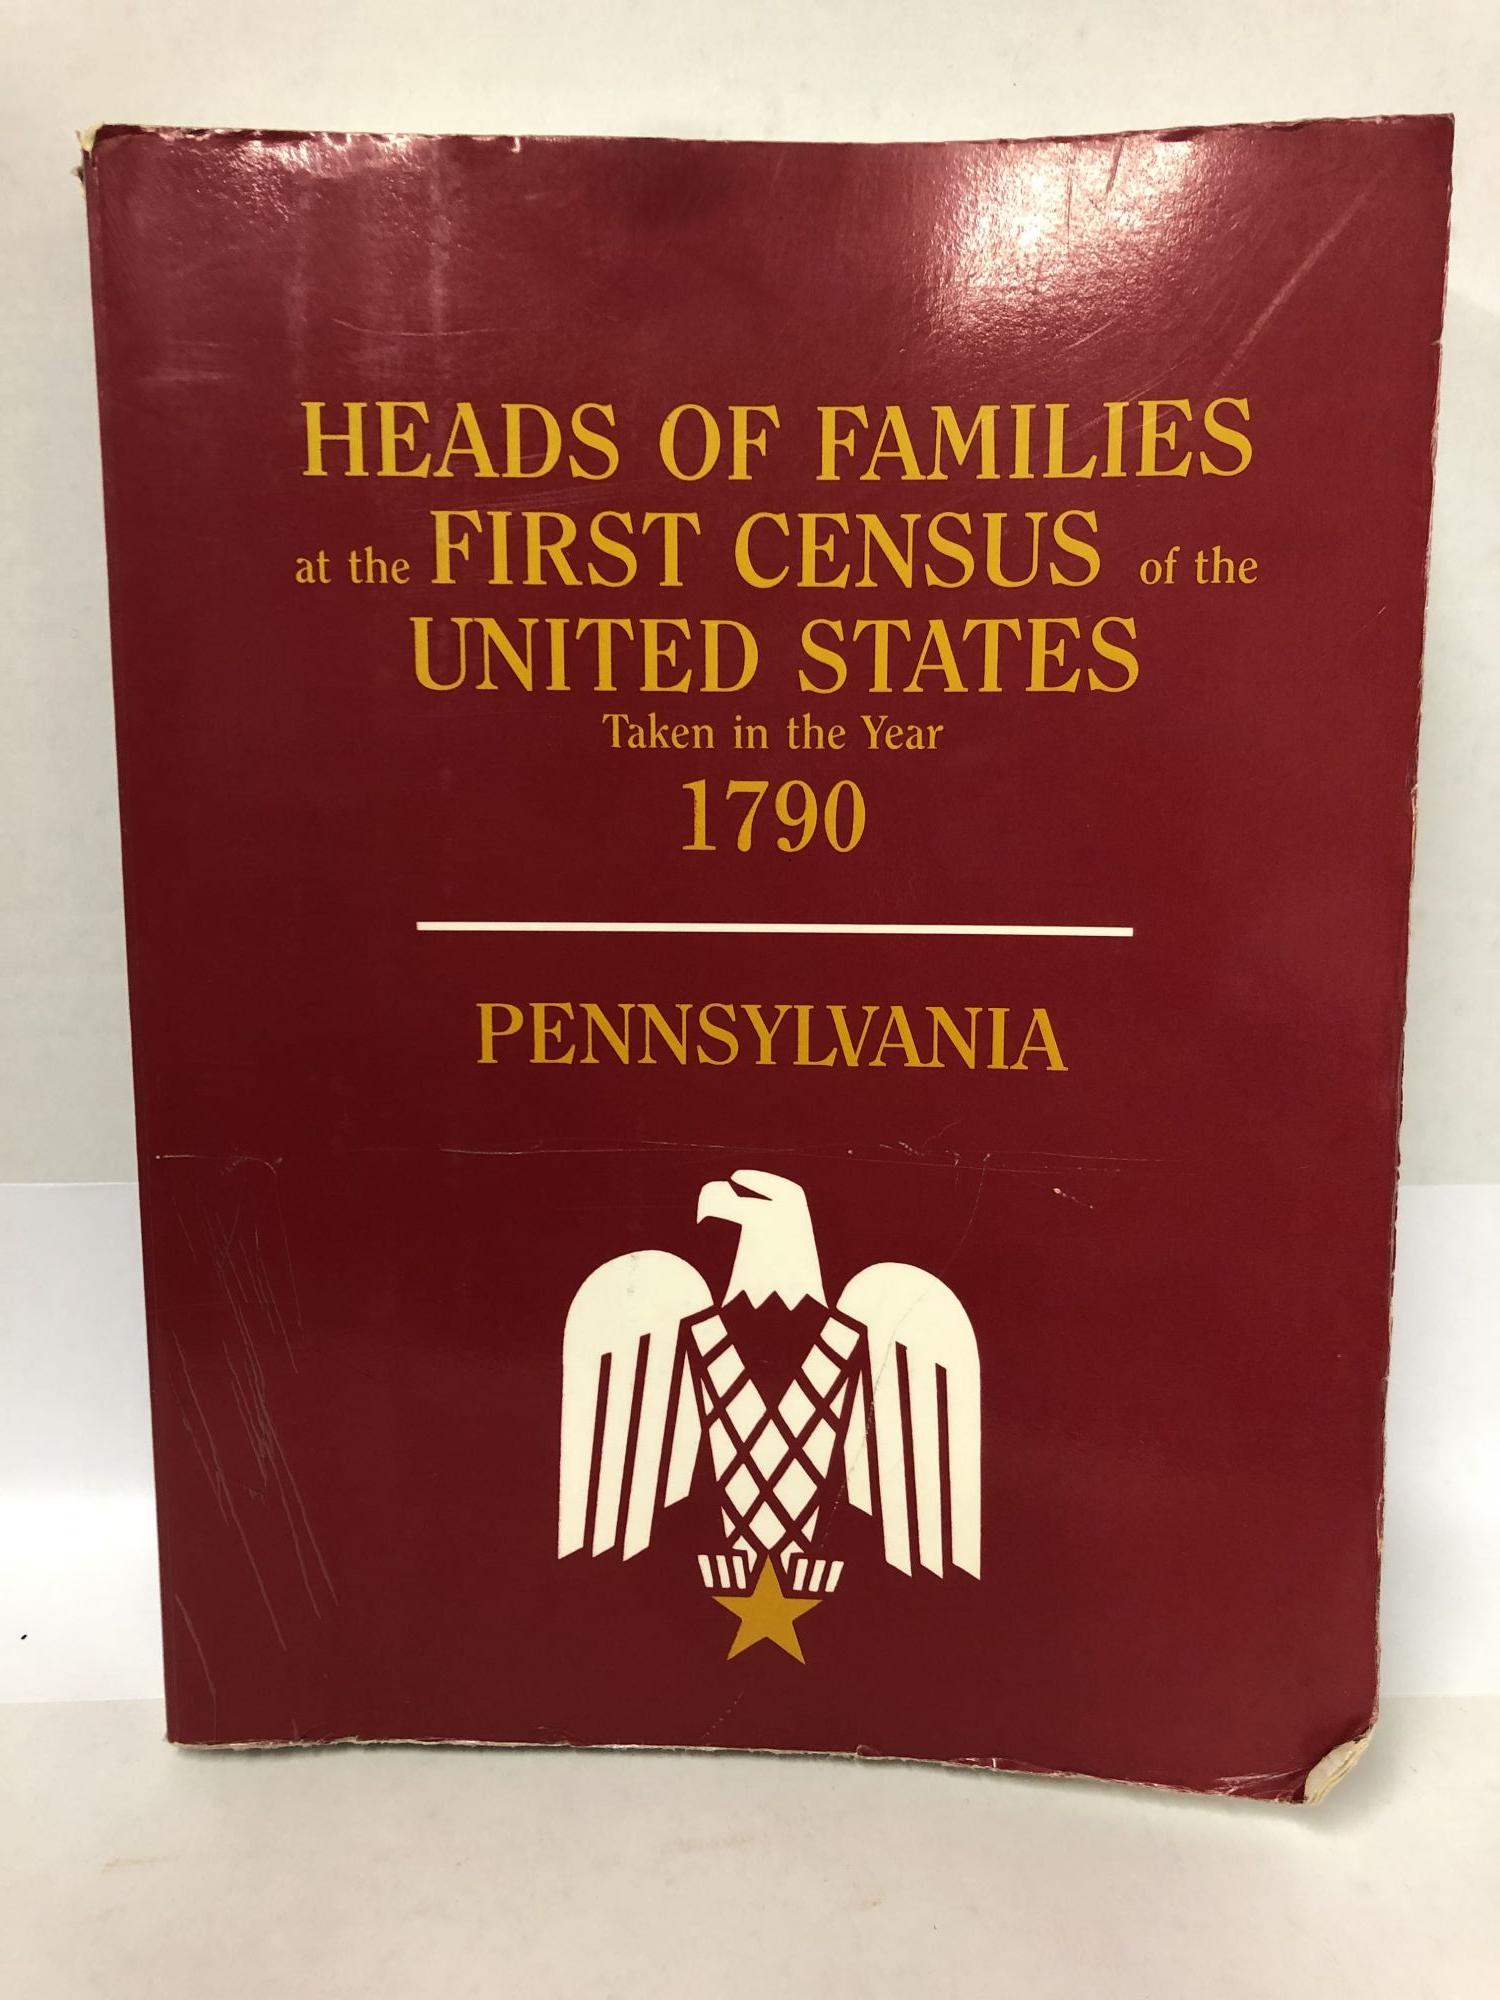 Pennsylvania: Heads of Families at the First Census of the United States Taken in the Year 1790